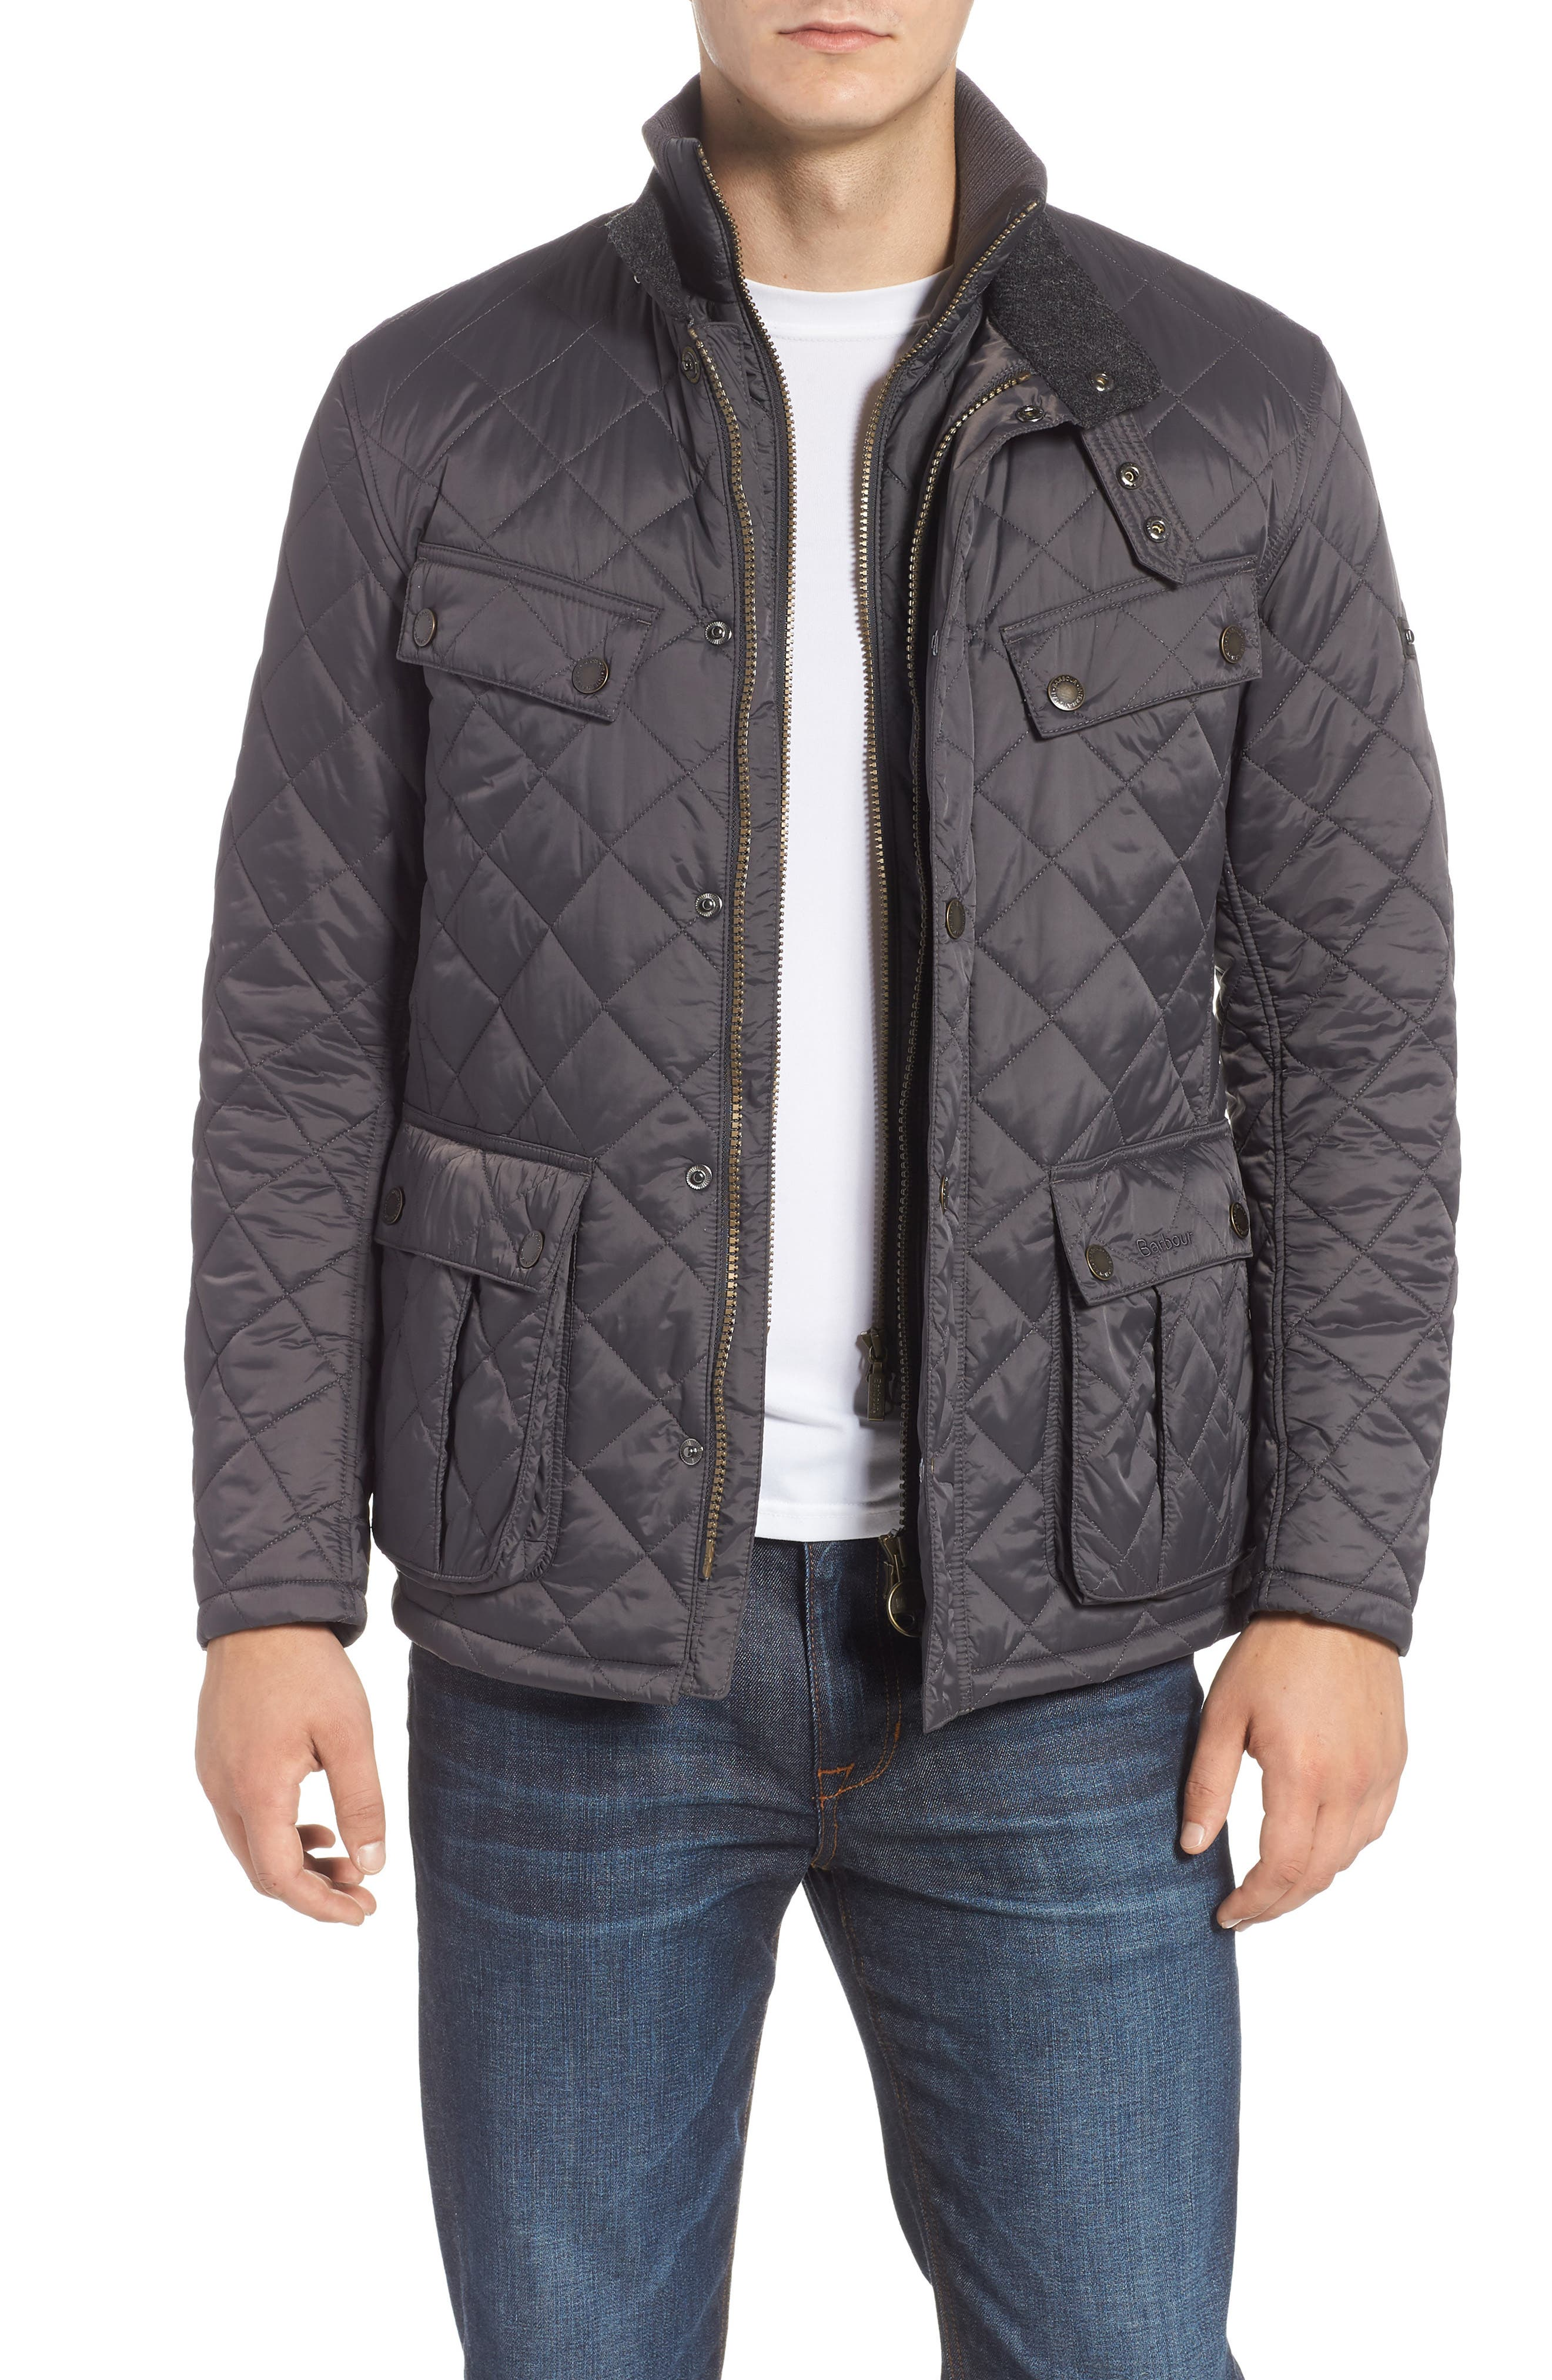 BARBOUR, International Windshield Quilted Jacket, Main thumbnail 1, color, CHARCOAL